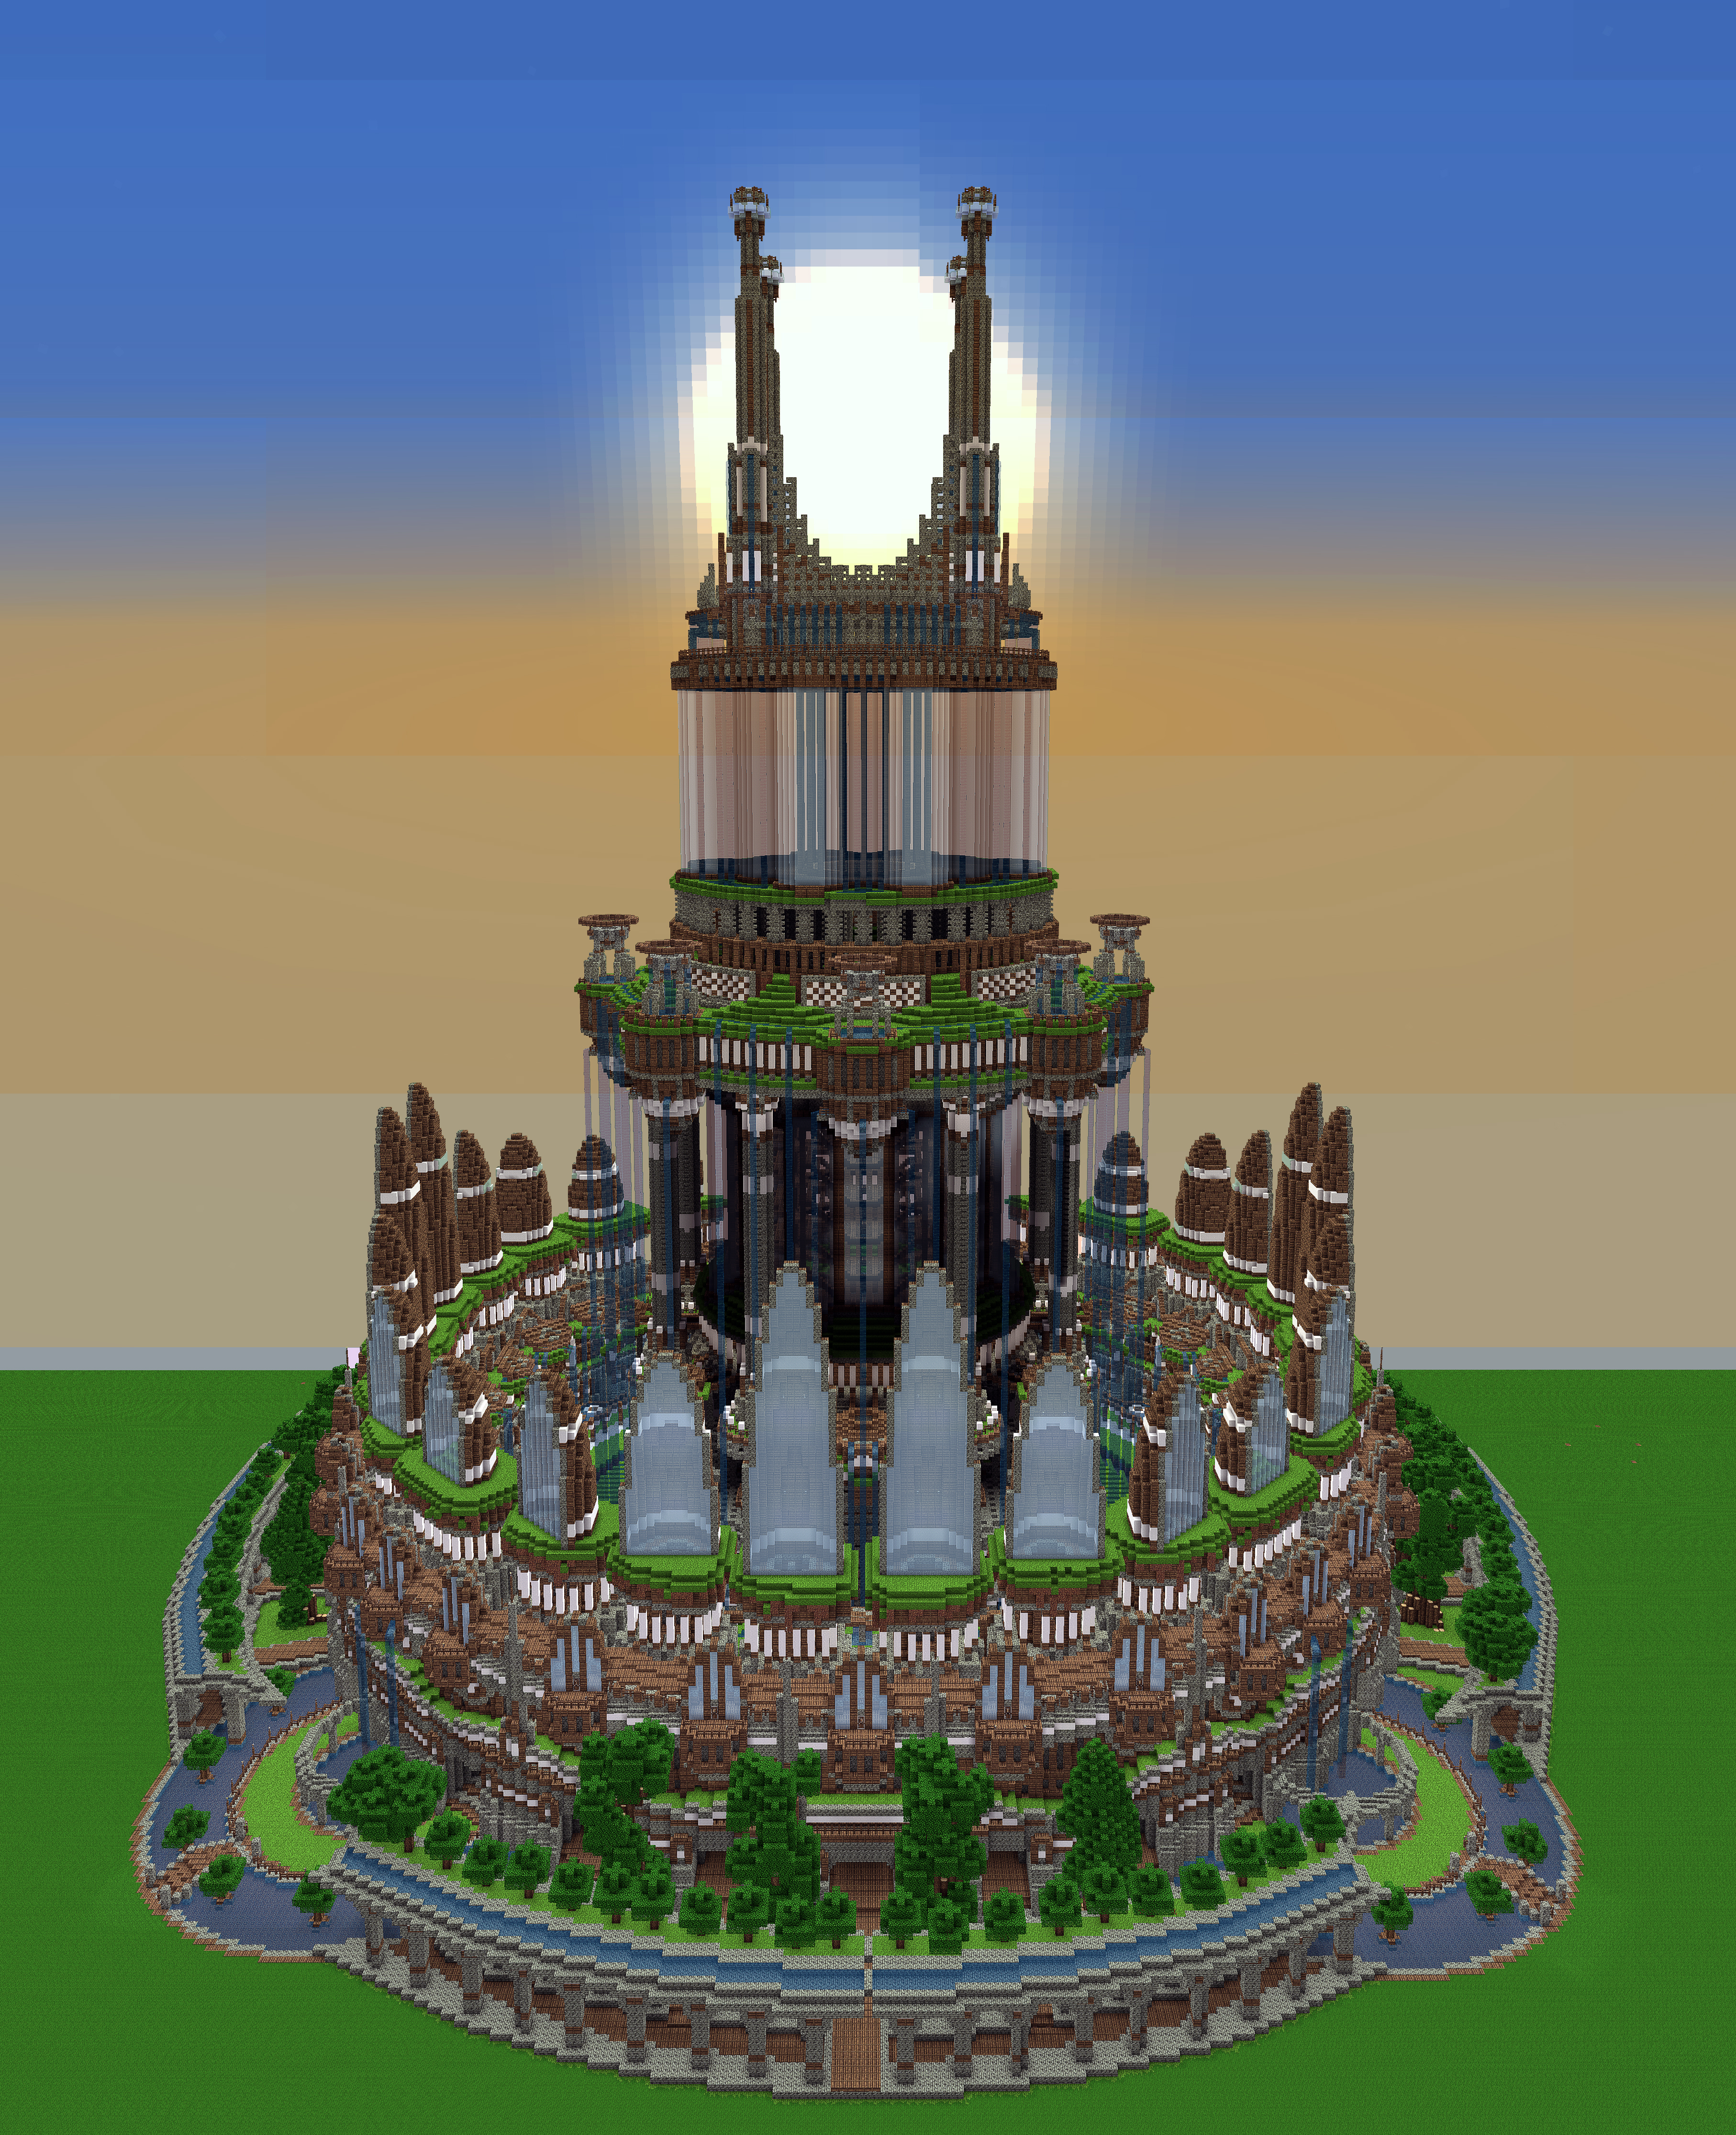 Ornamented Tower By Haikuo On DeviantArt